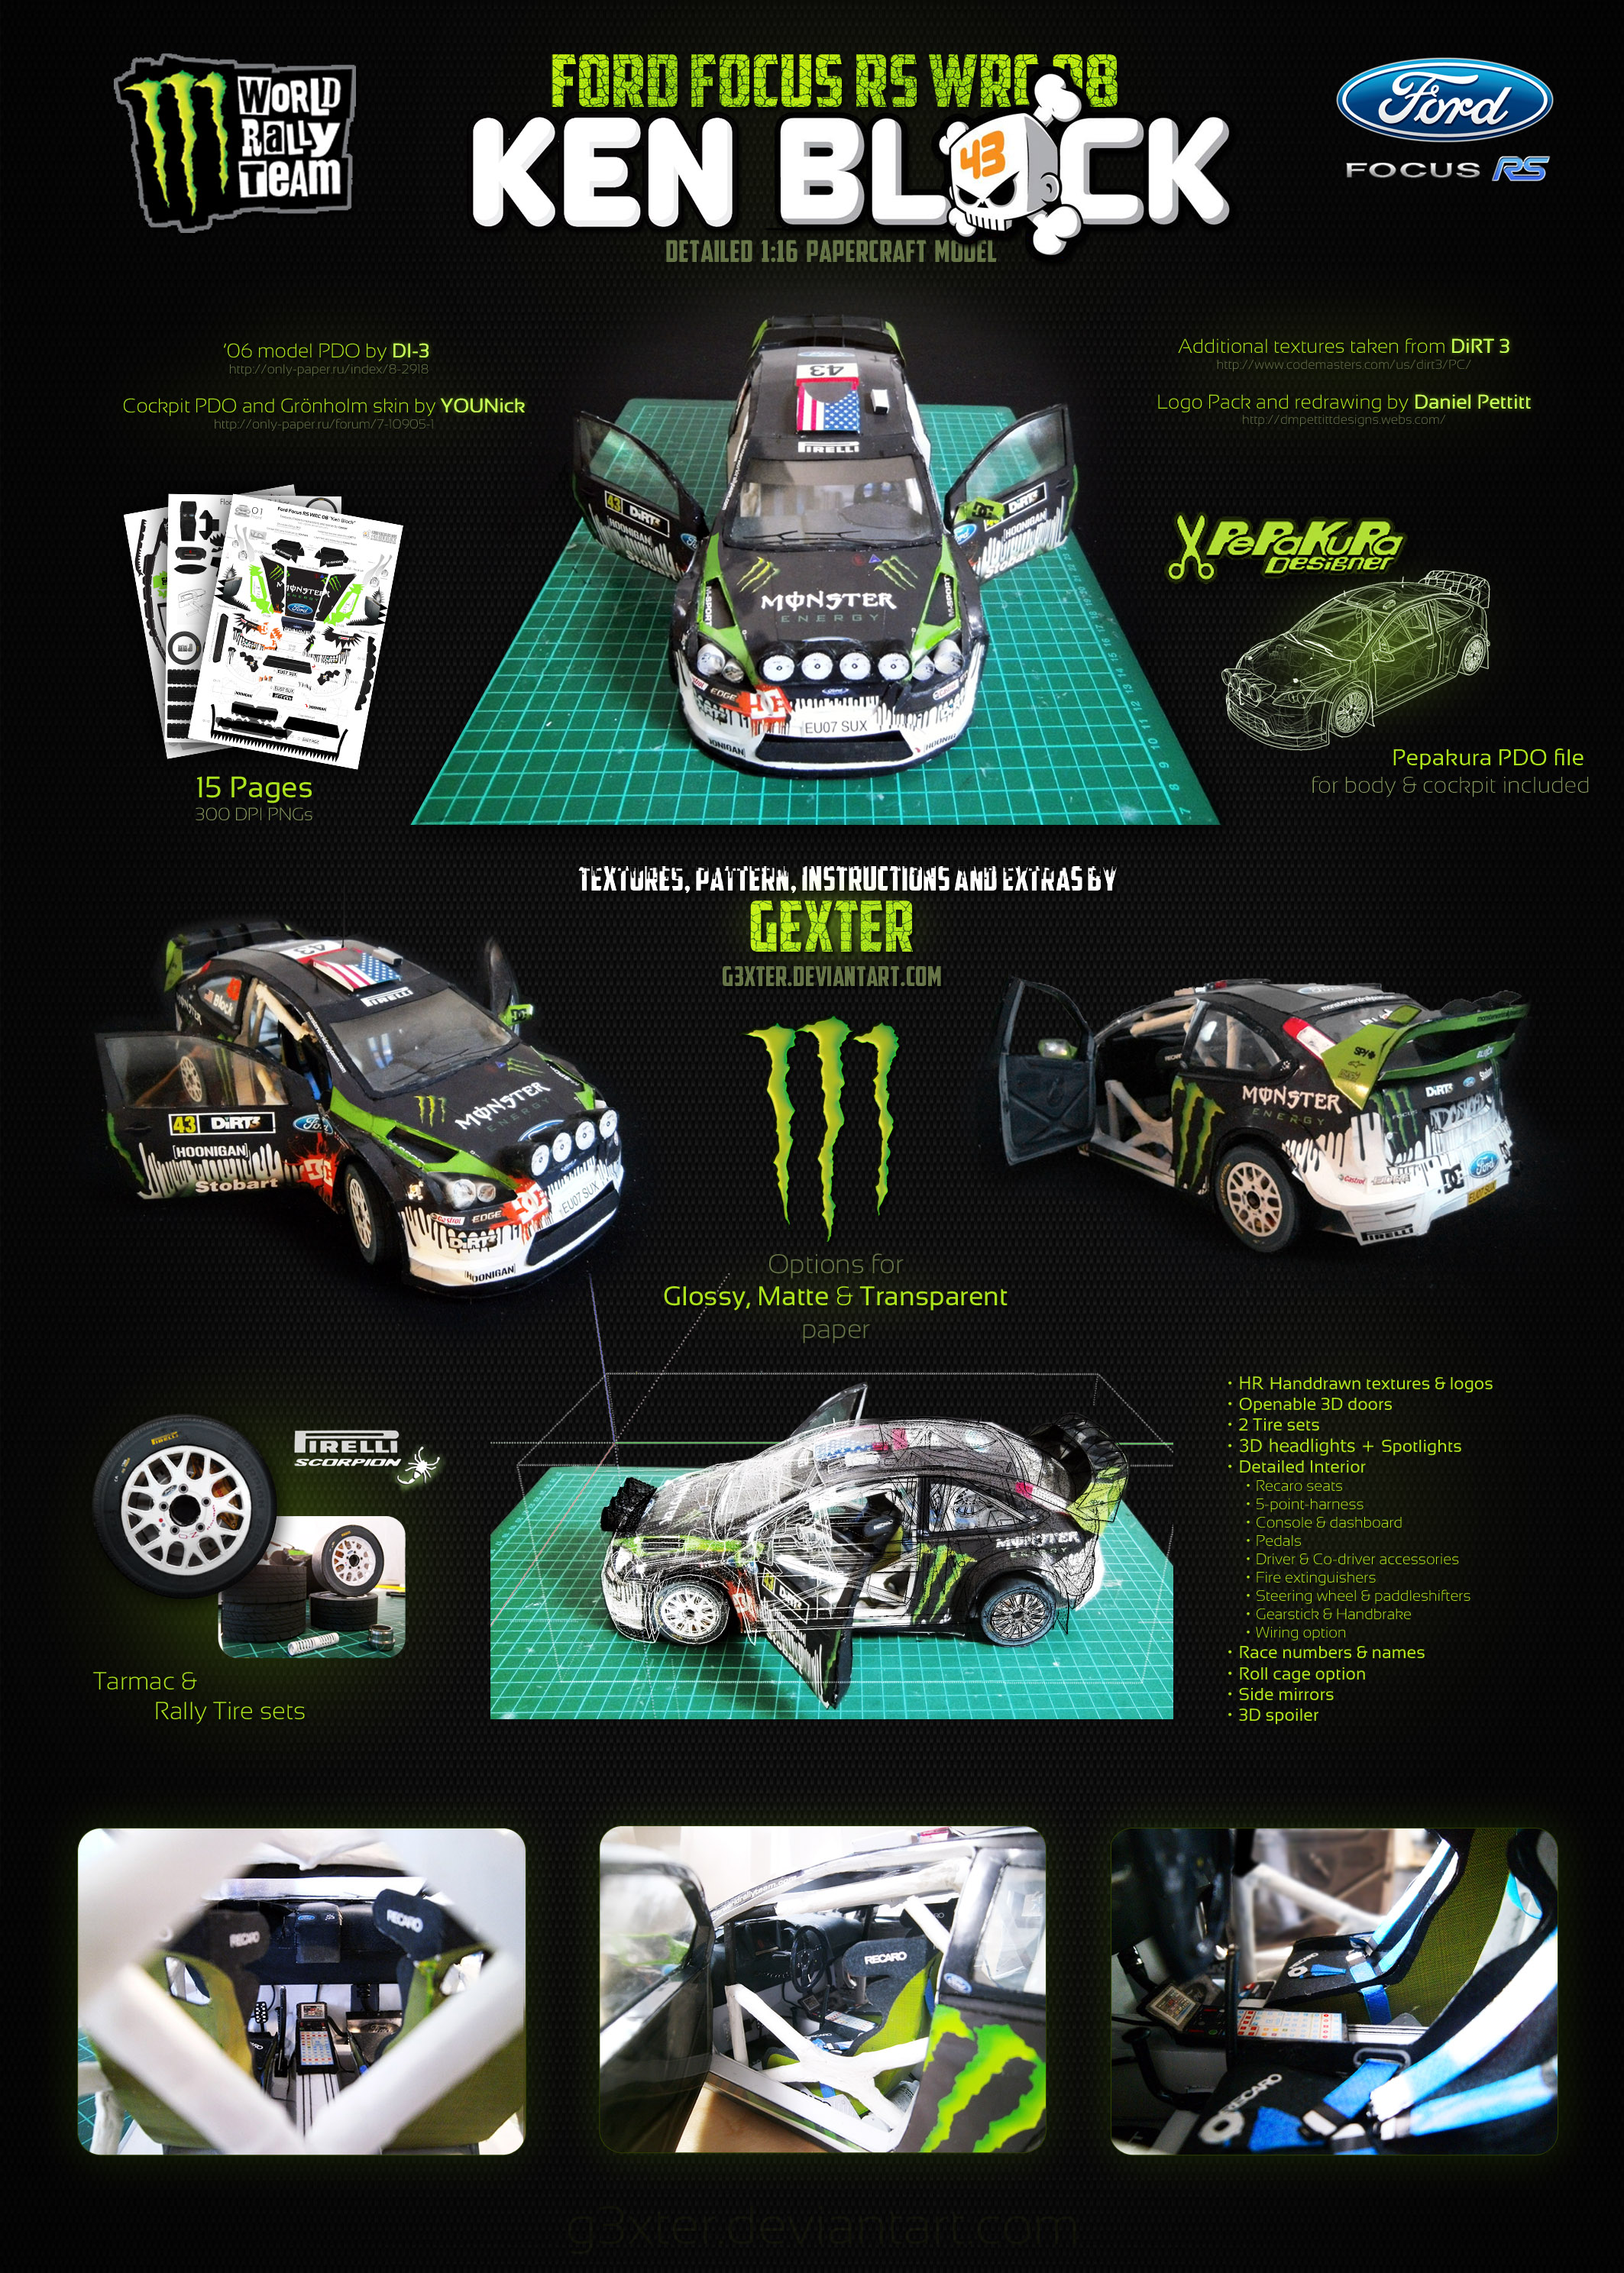 Ford Focus RS WRC 08 'K.Block' Papercraft Template by